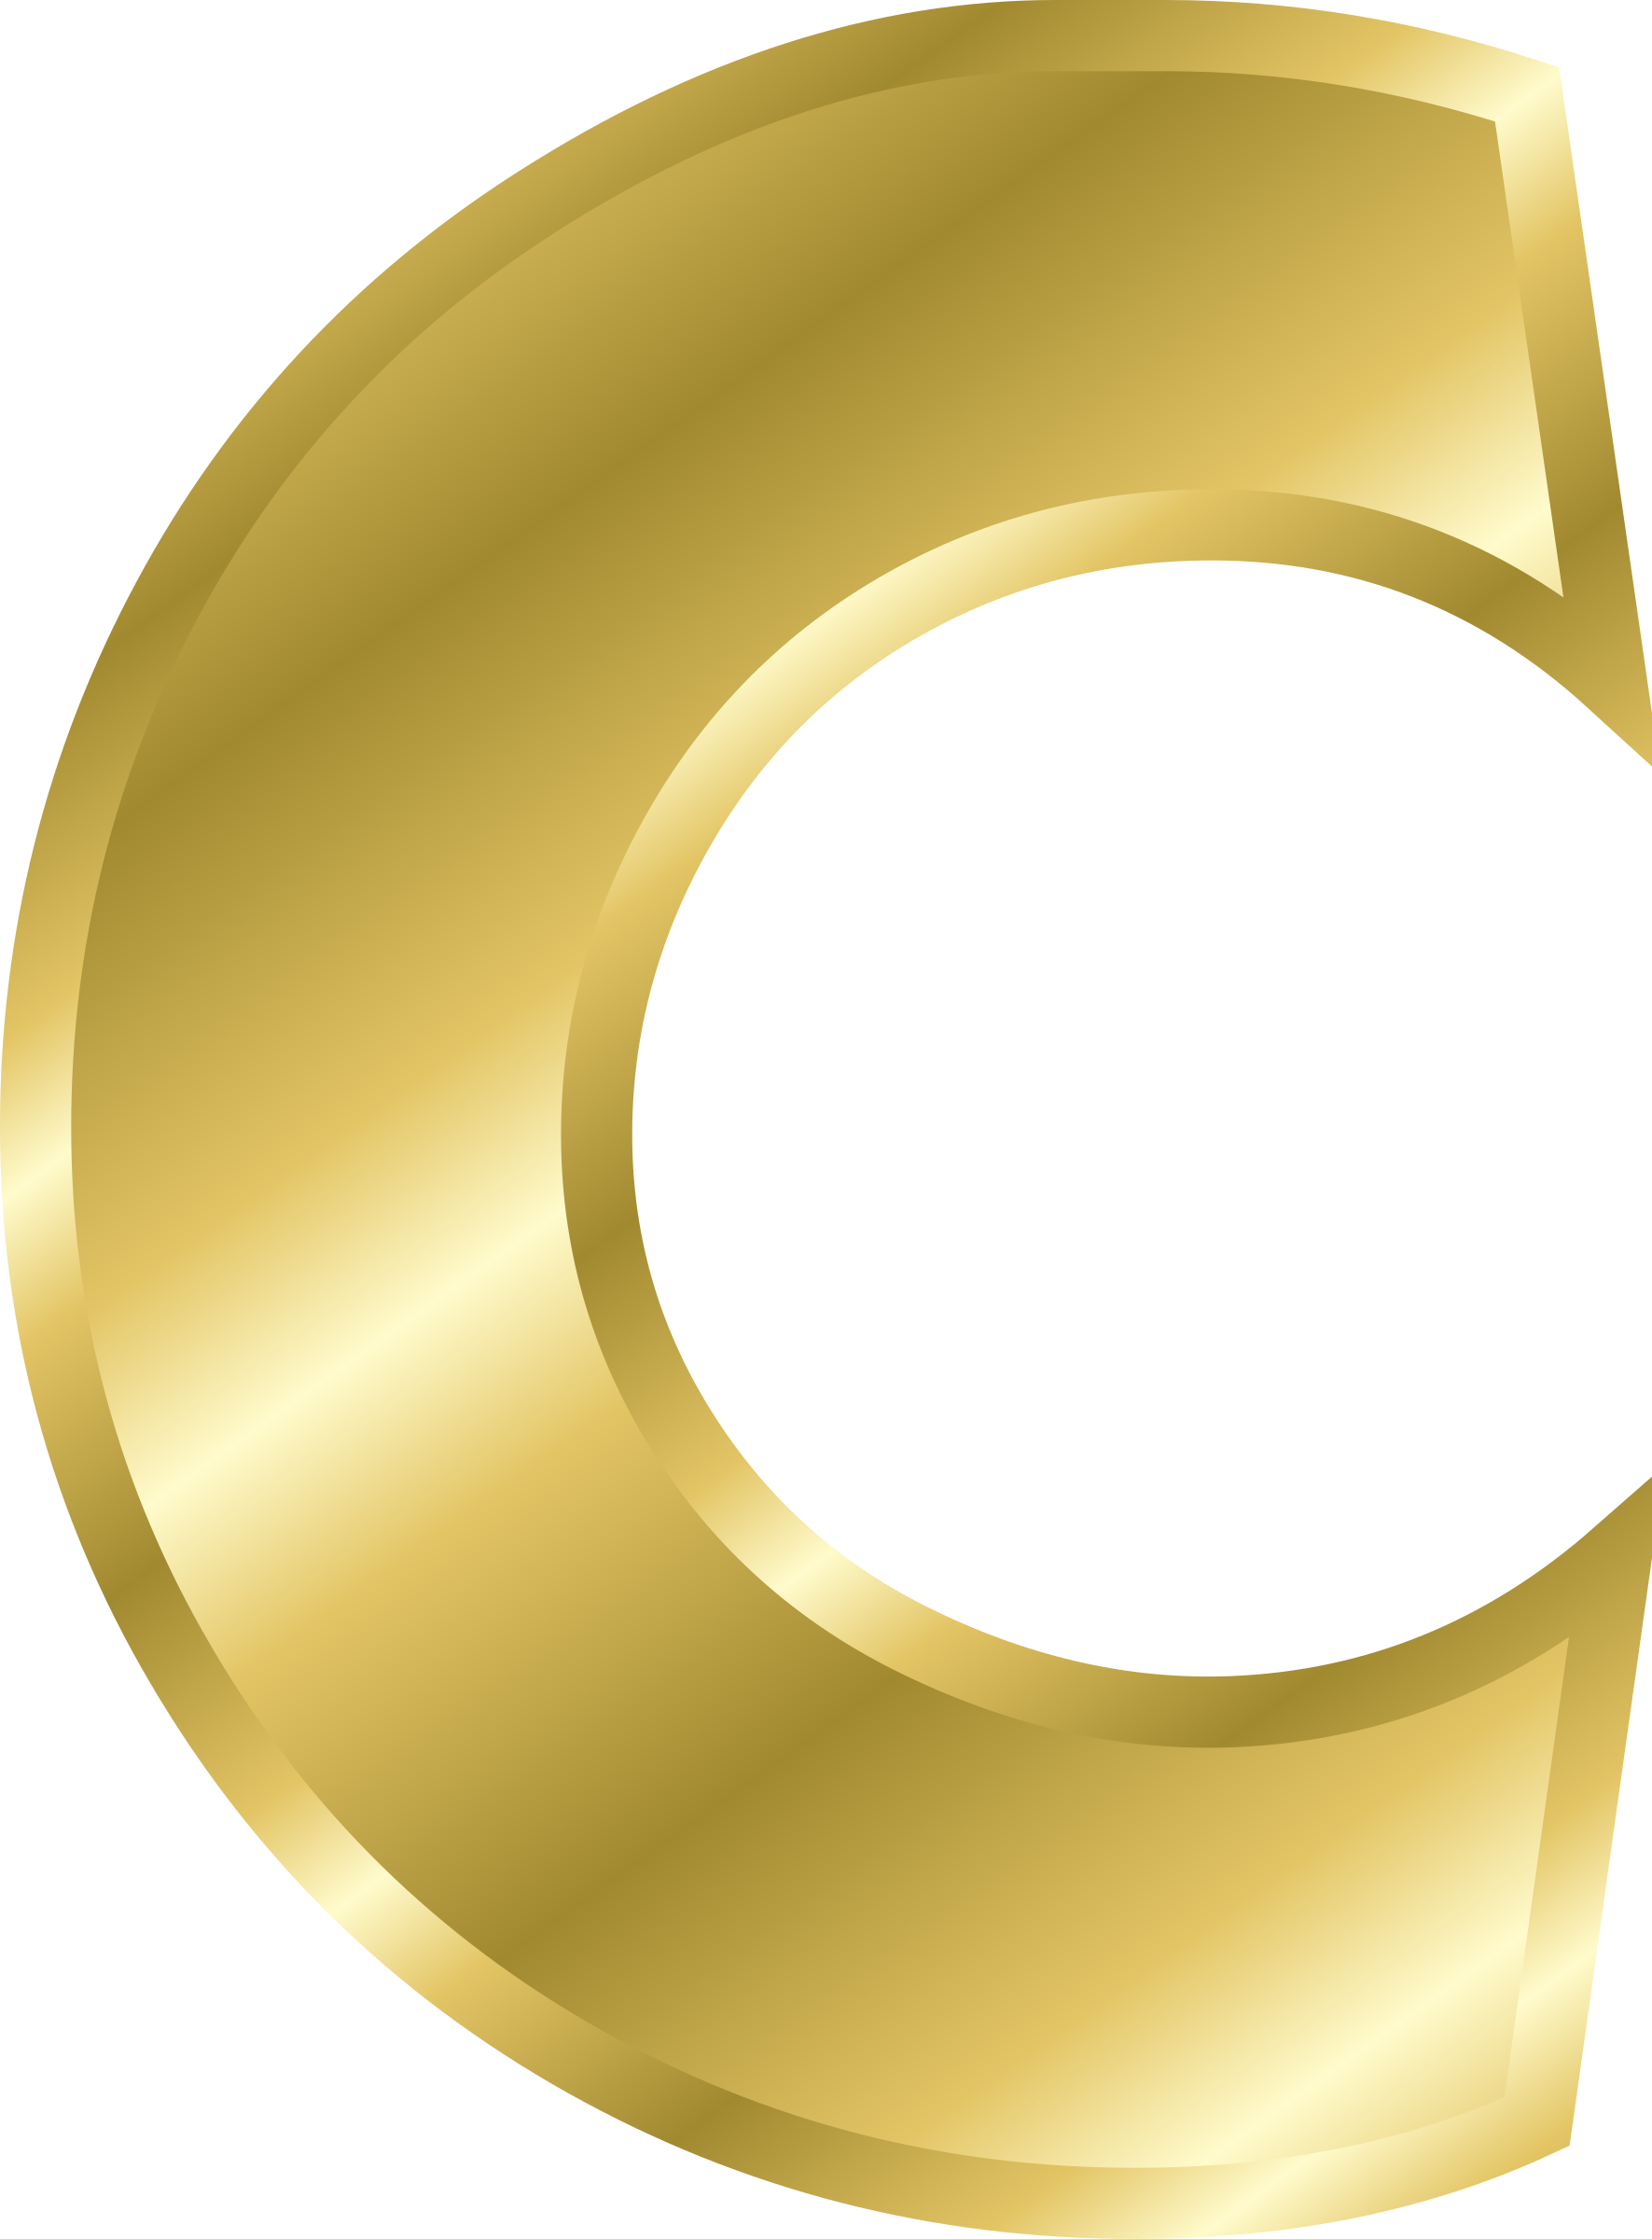 B Letter In Gold Clipart - Effect Lette...